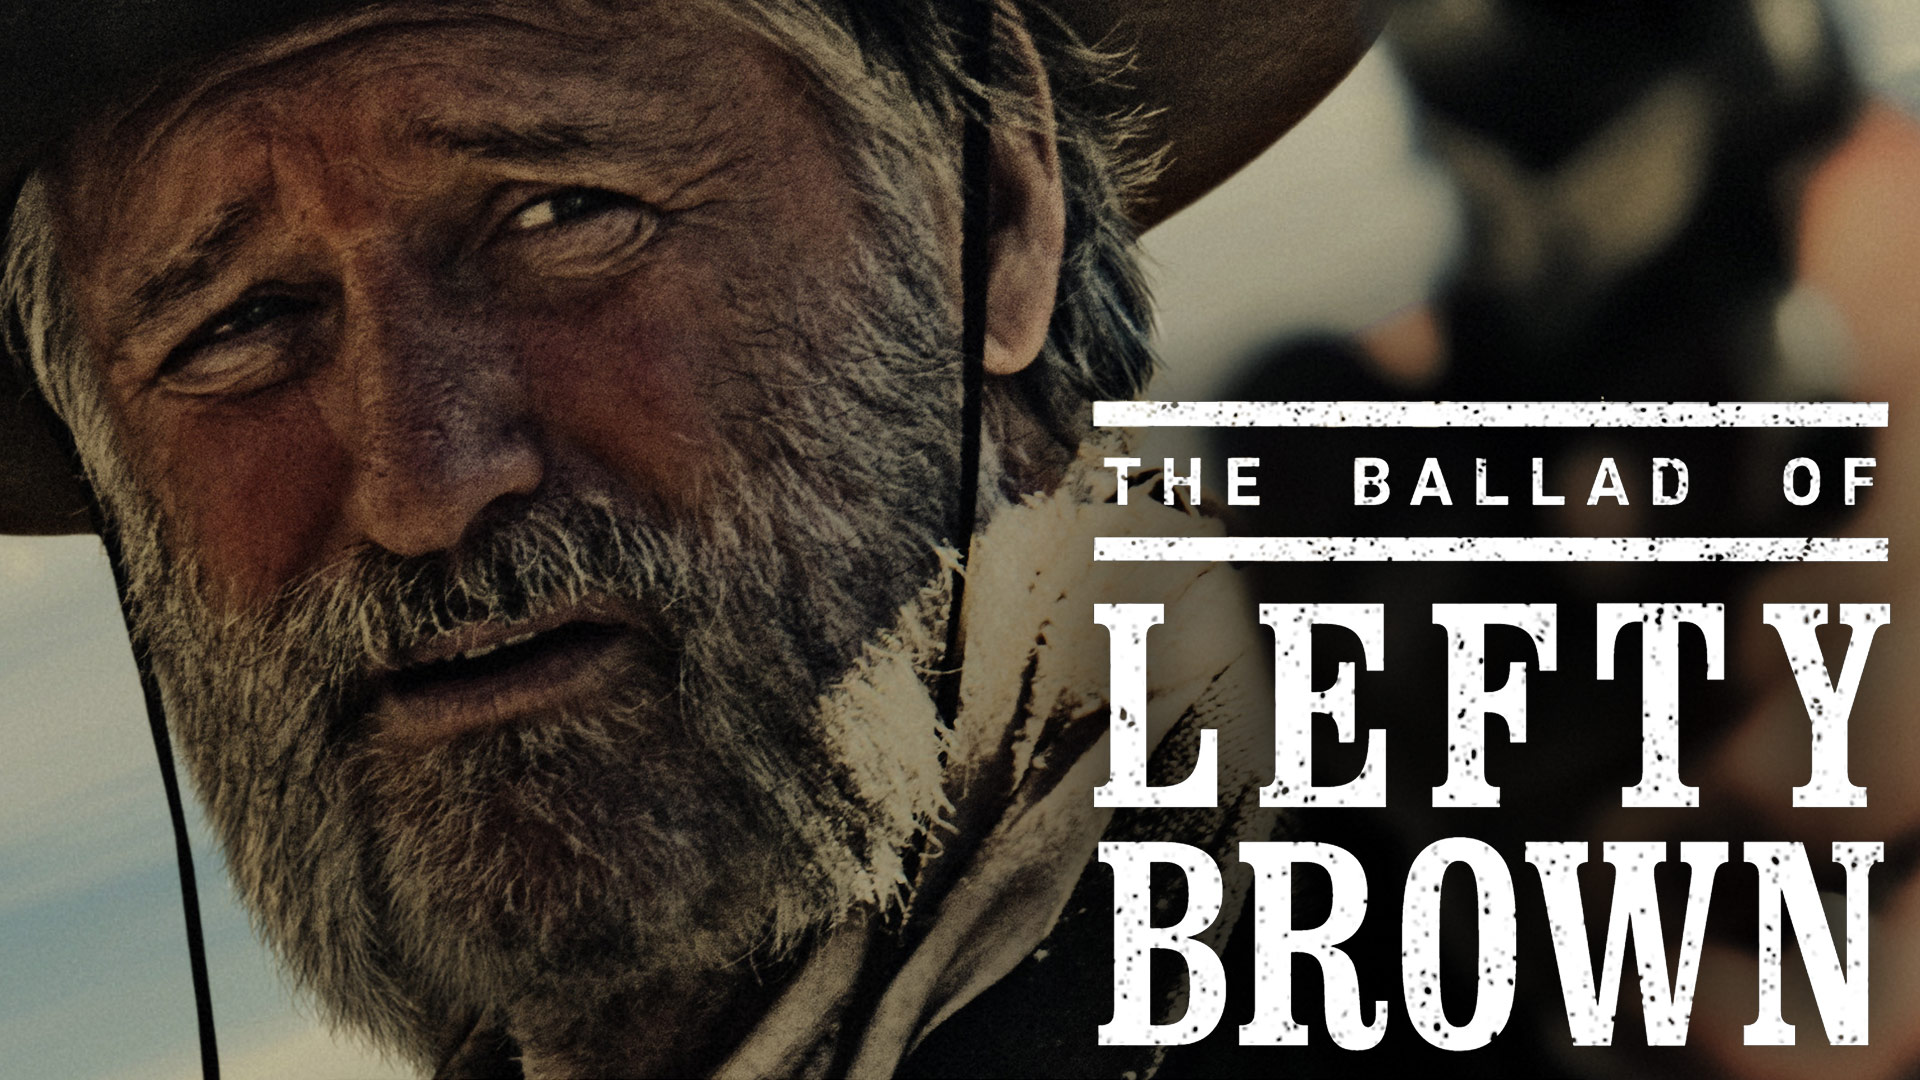 The Ballad of Lefty Brown